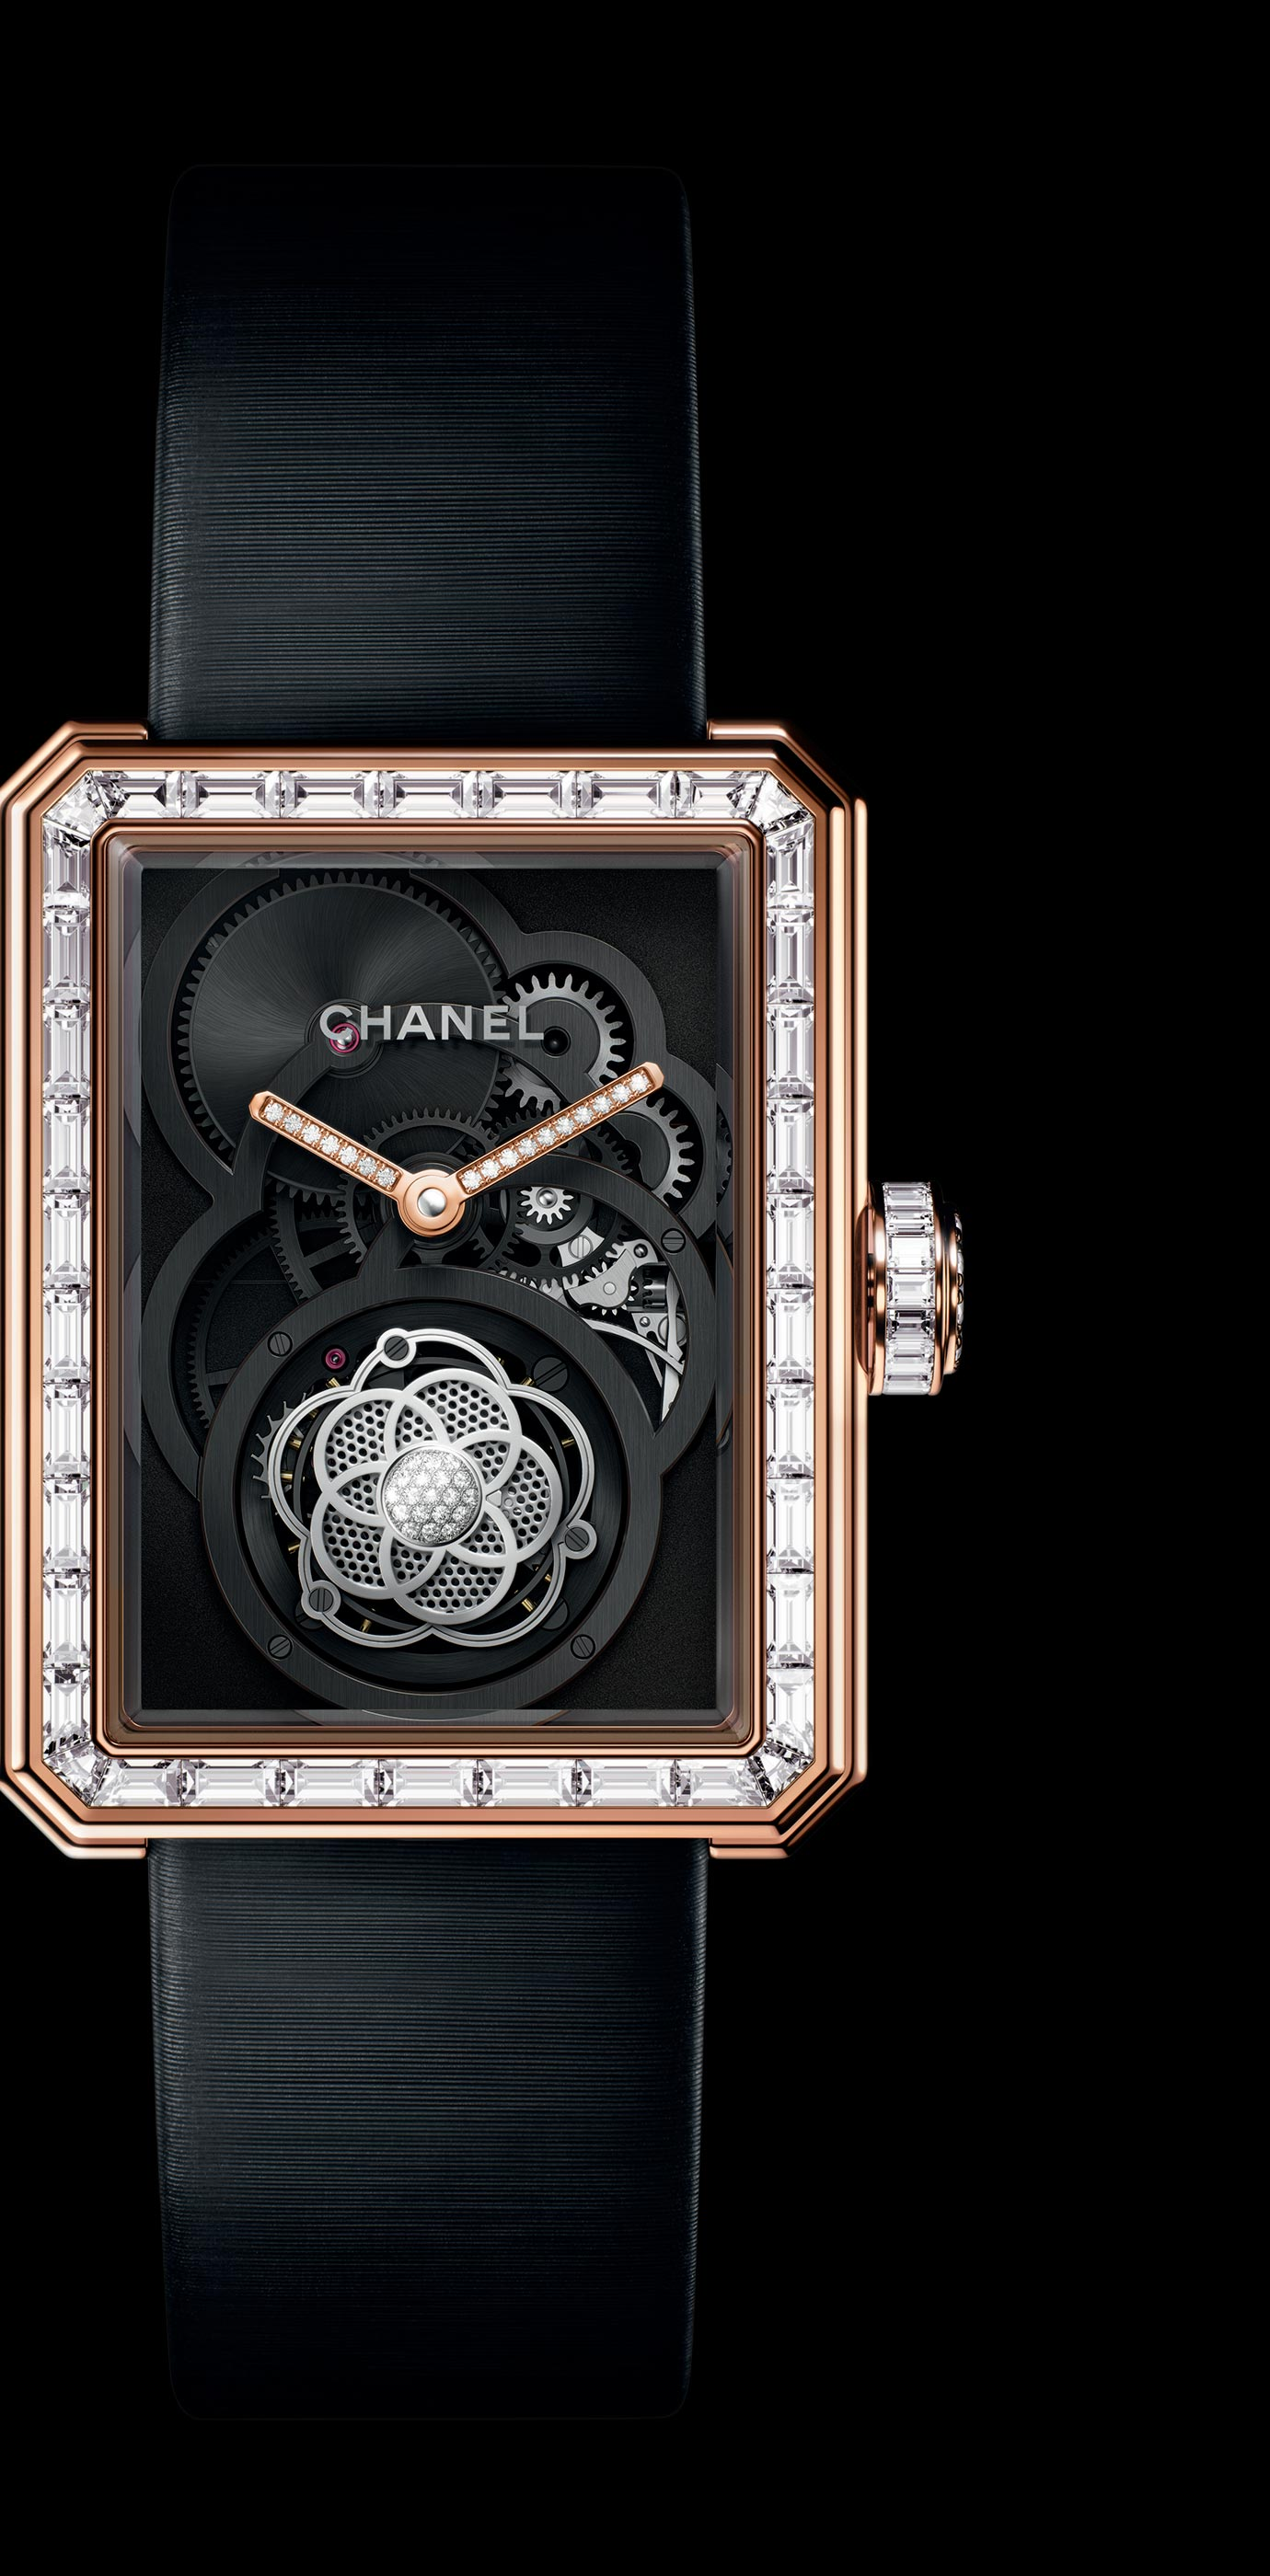 Première Flying Tourbillon Openwork watch in BEIGE GOLD, case, bezel and crown set with baguette and brilliant cut diamonds.